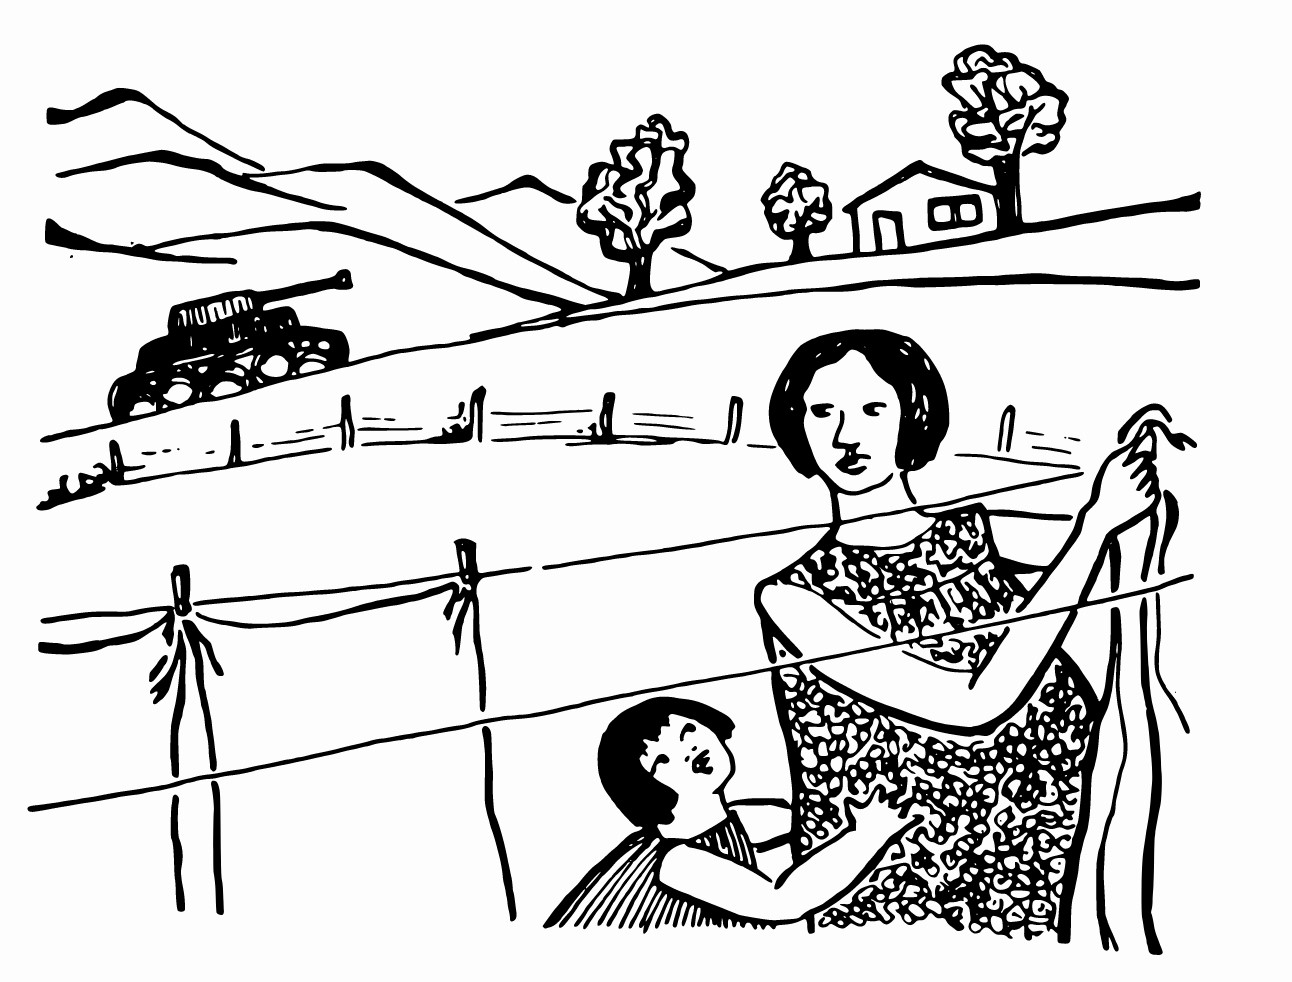 Mother and child hanging clothes while a tank rolls by in the distance, by Rini Templeton